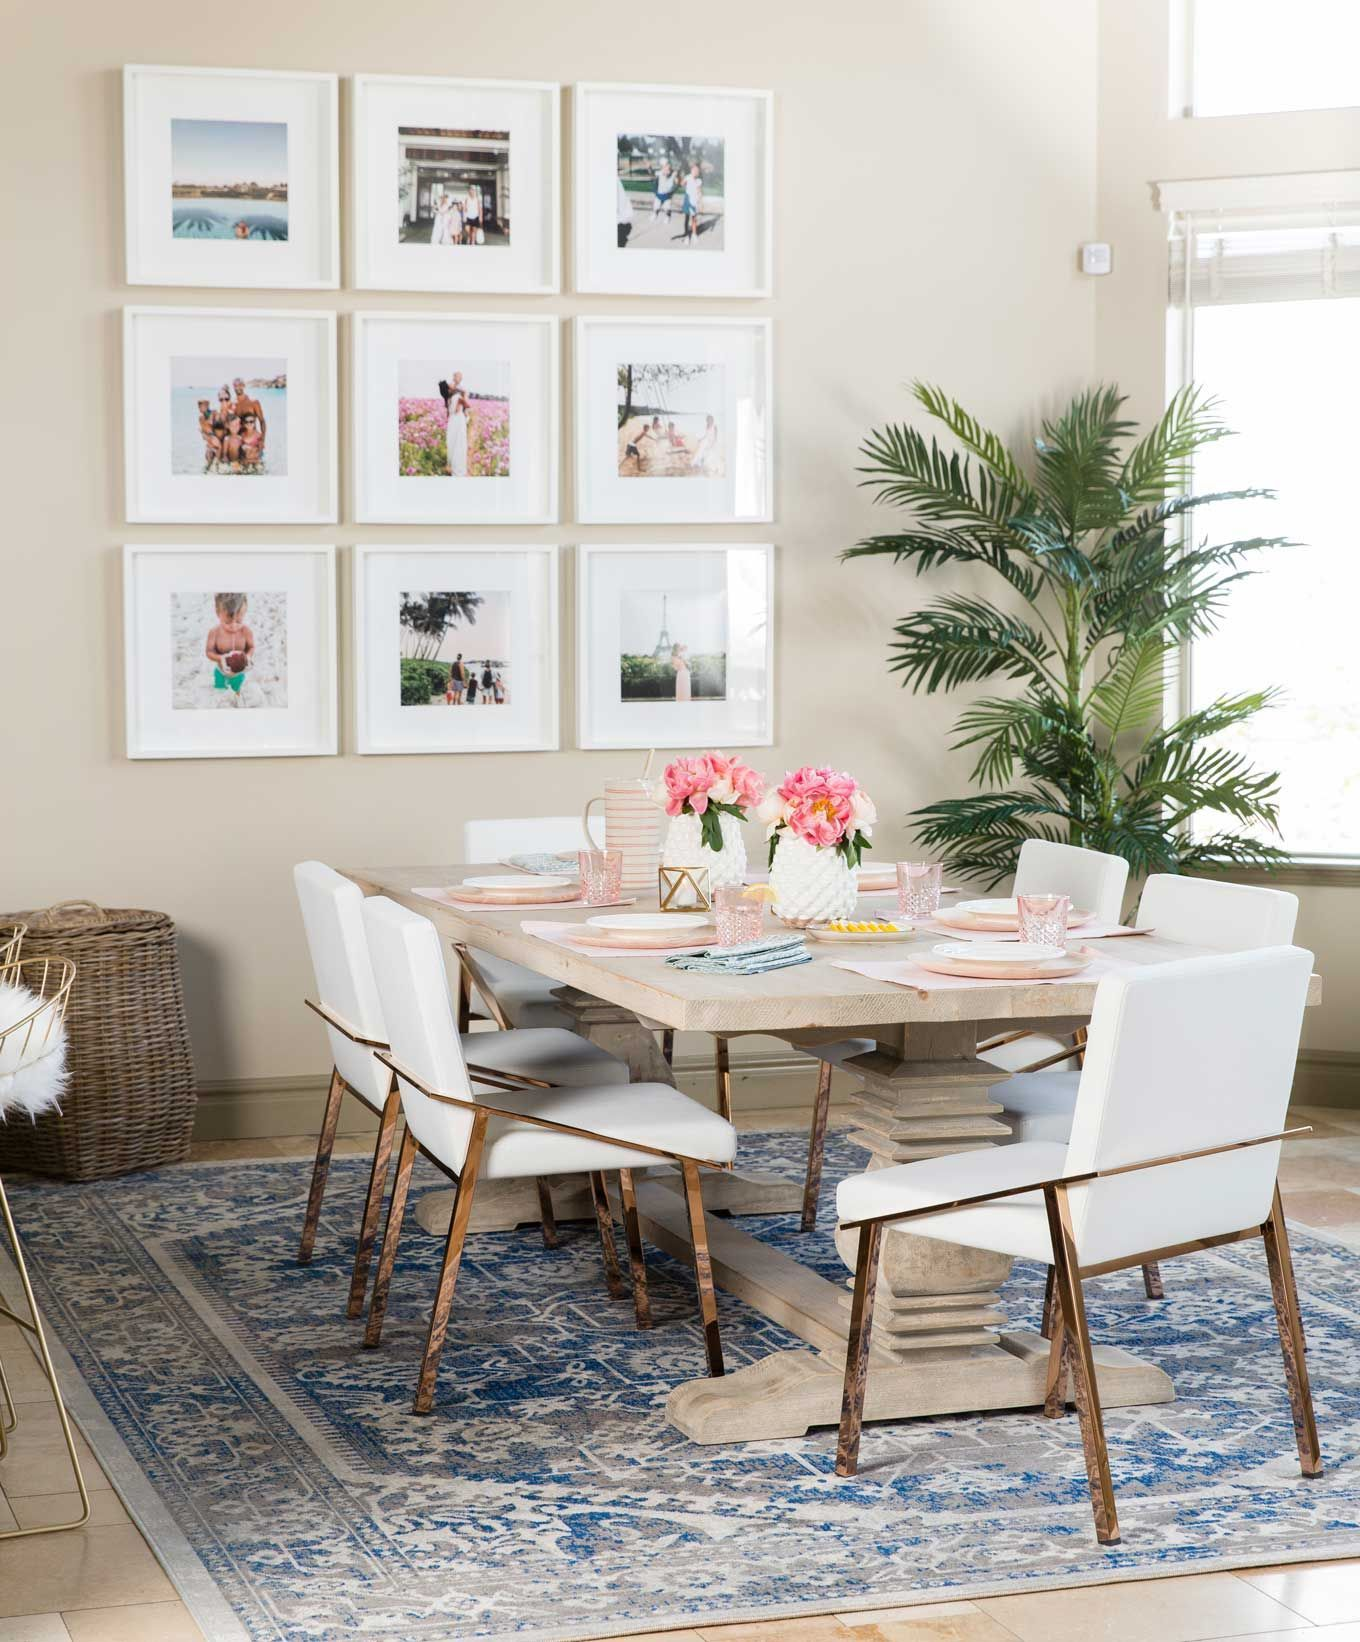 How To Choose A Rug Rug Placement Size Guide Modern Dining Room Blogger Dining Room Dining Room Walls